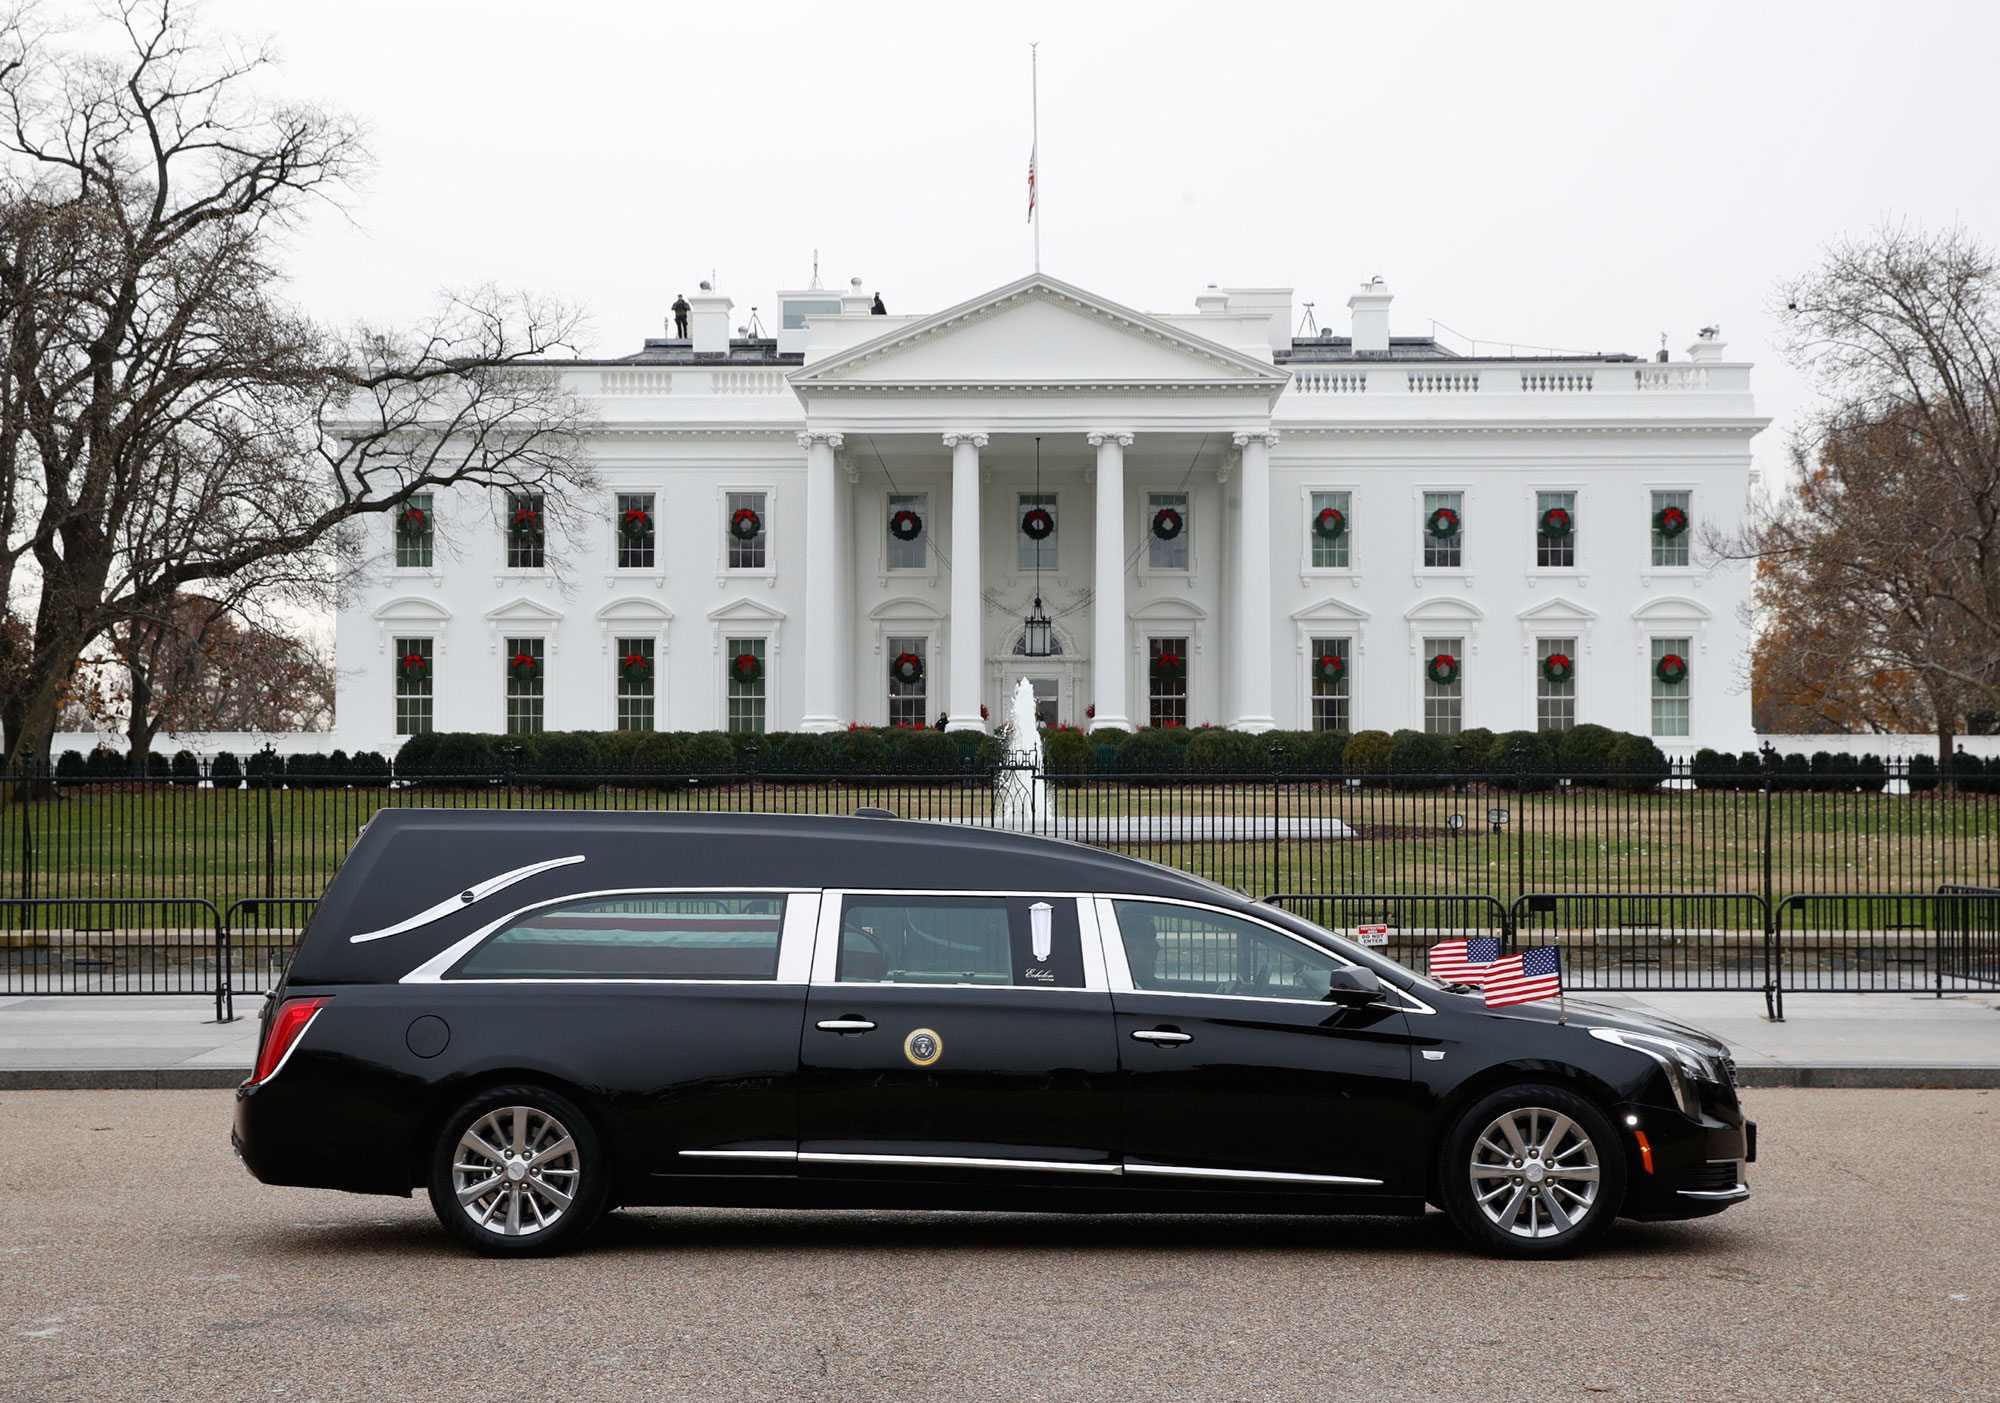 "<div class=""meta image-caption""><div class=""origin-logo origin-image none""><span>none</span></div><span class=""caption-text"">The hearse carrying the flag-draped casket of former President George H.W. Bush passes by the White House from the Capitol, heading to a State Funeral at the National Cathedral. (Jacquelyn Martin/AP Photo)</span></div>"